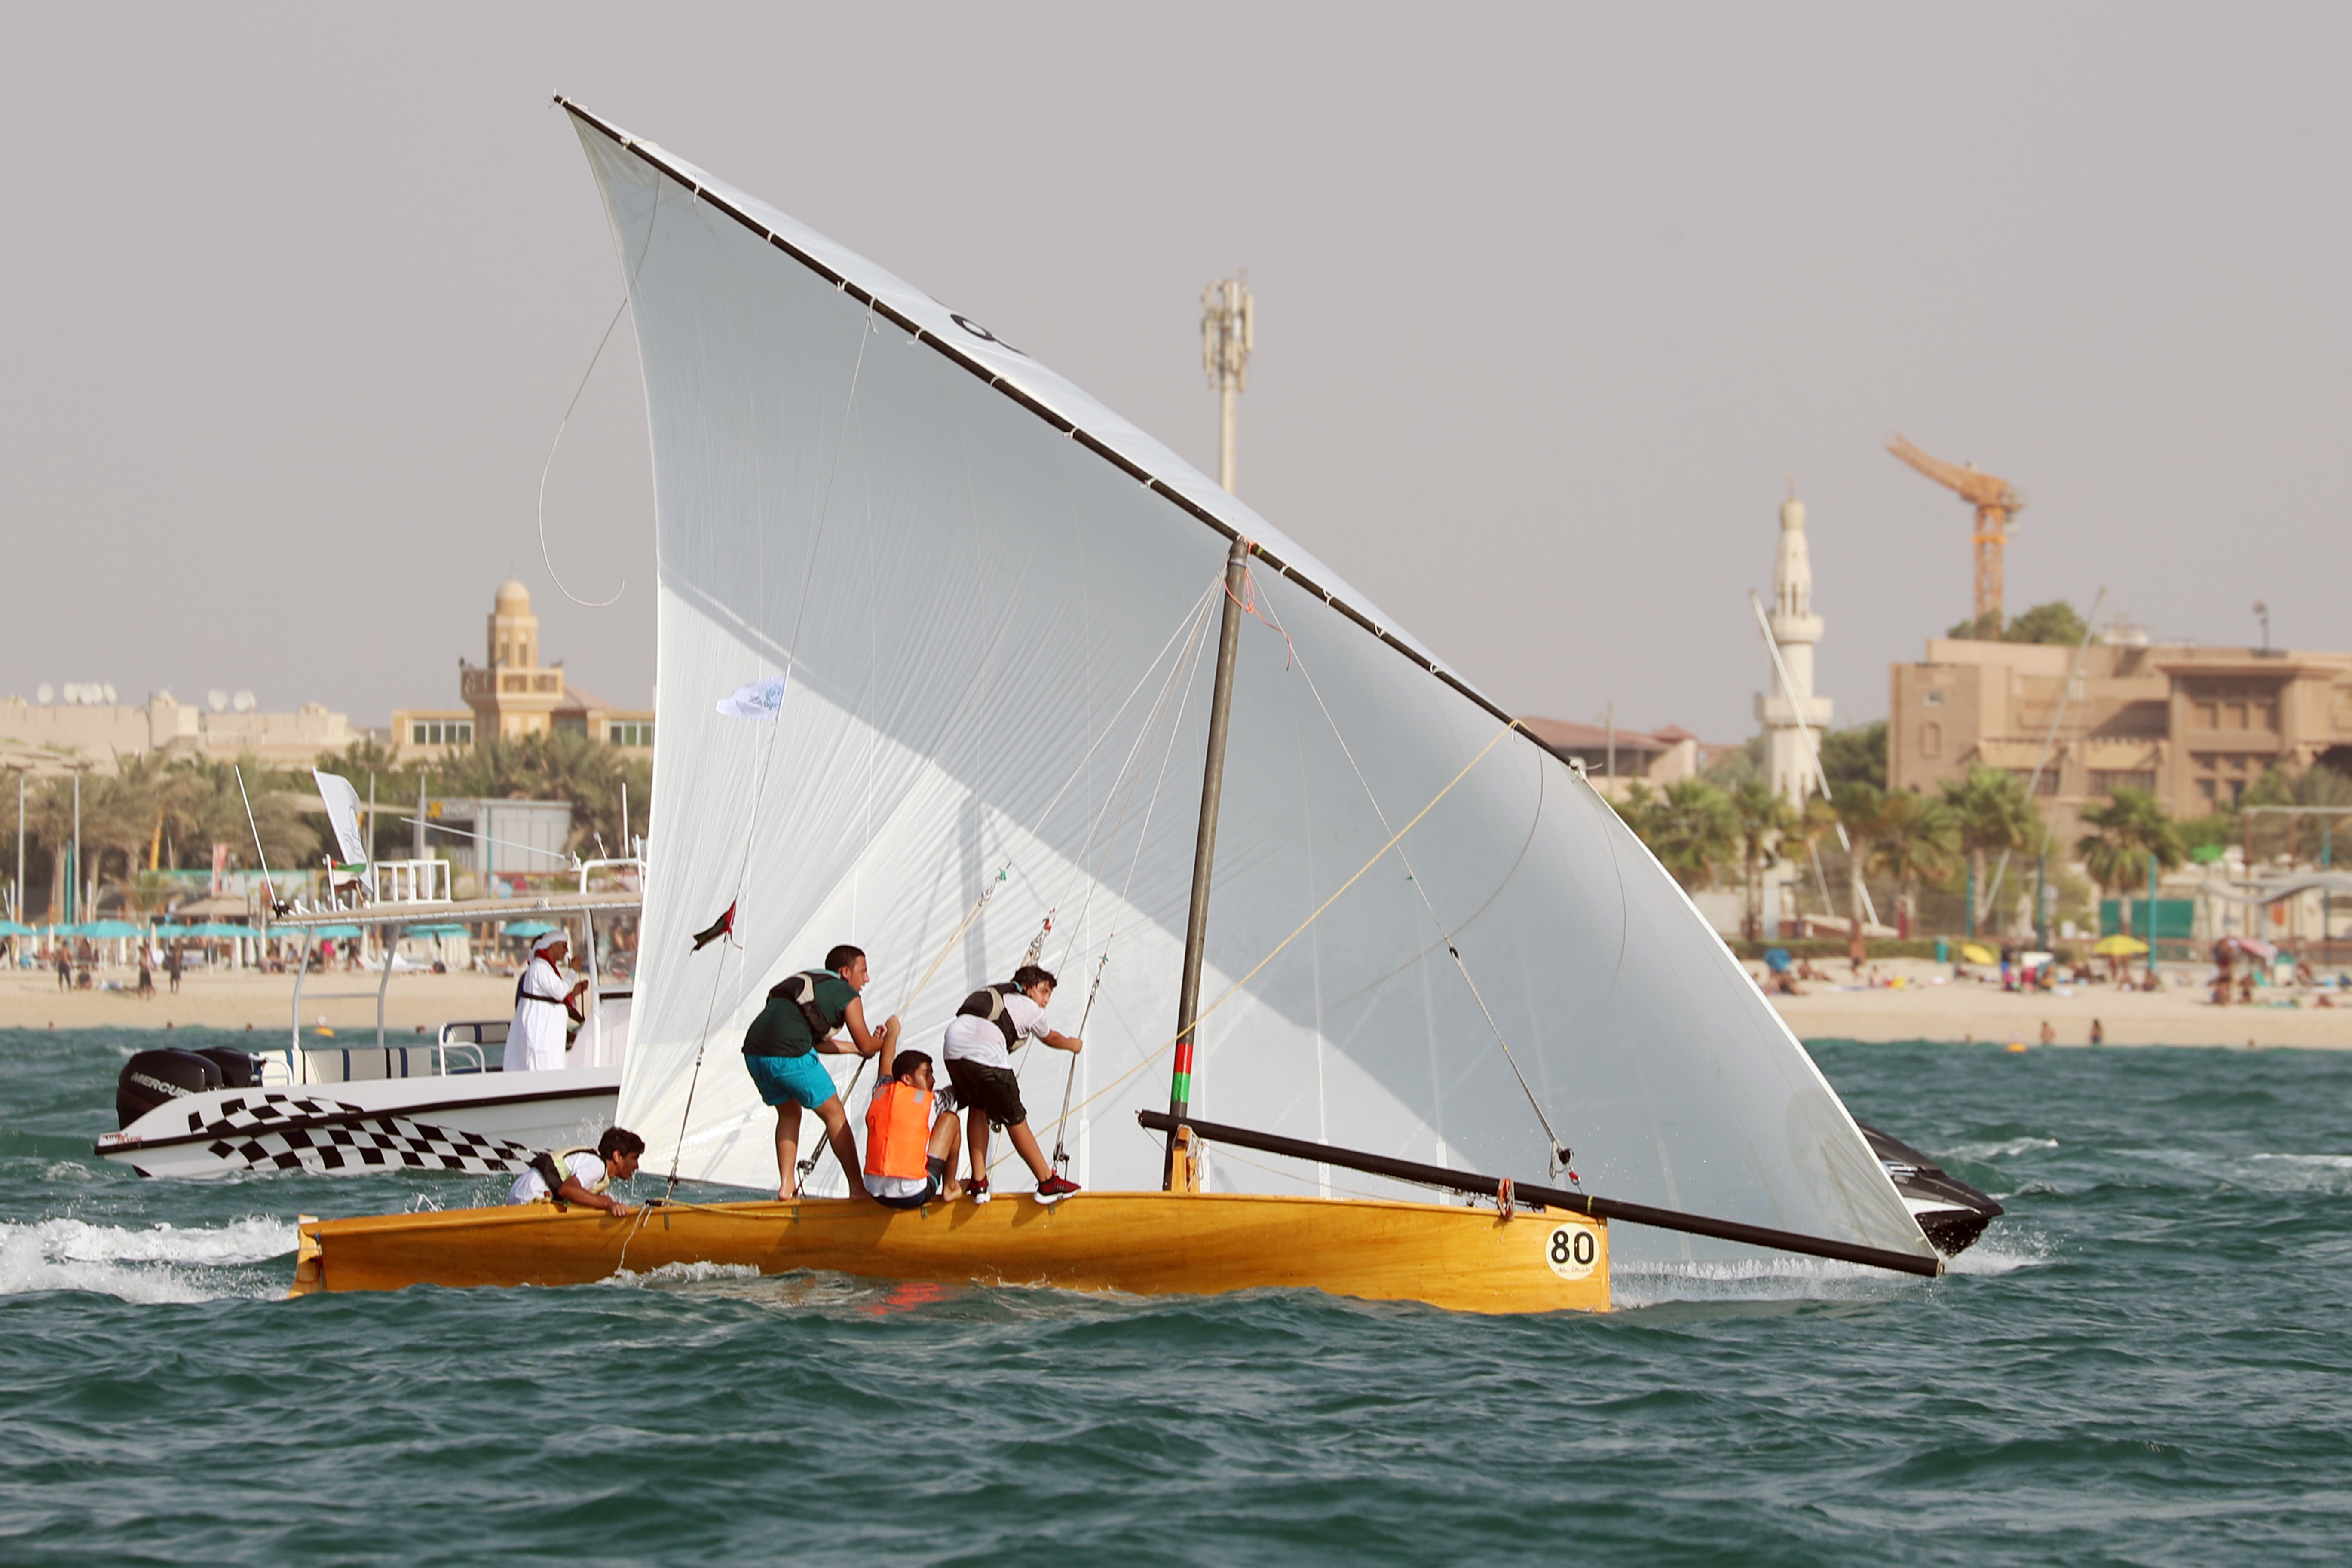 Al Serb 80 topped the 22ft Dhow Race Overall